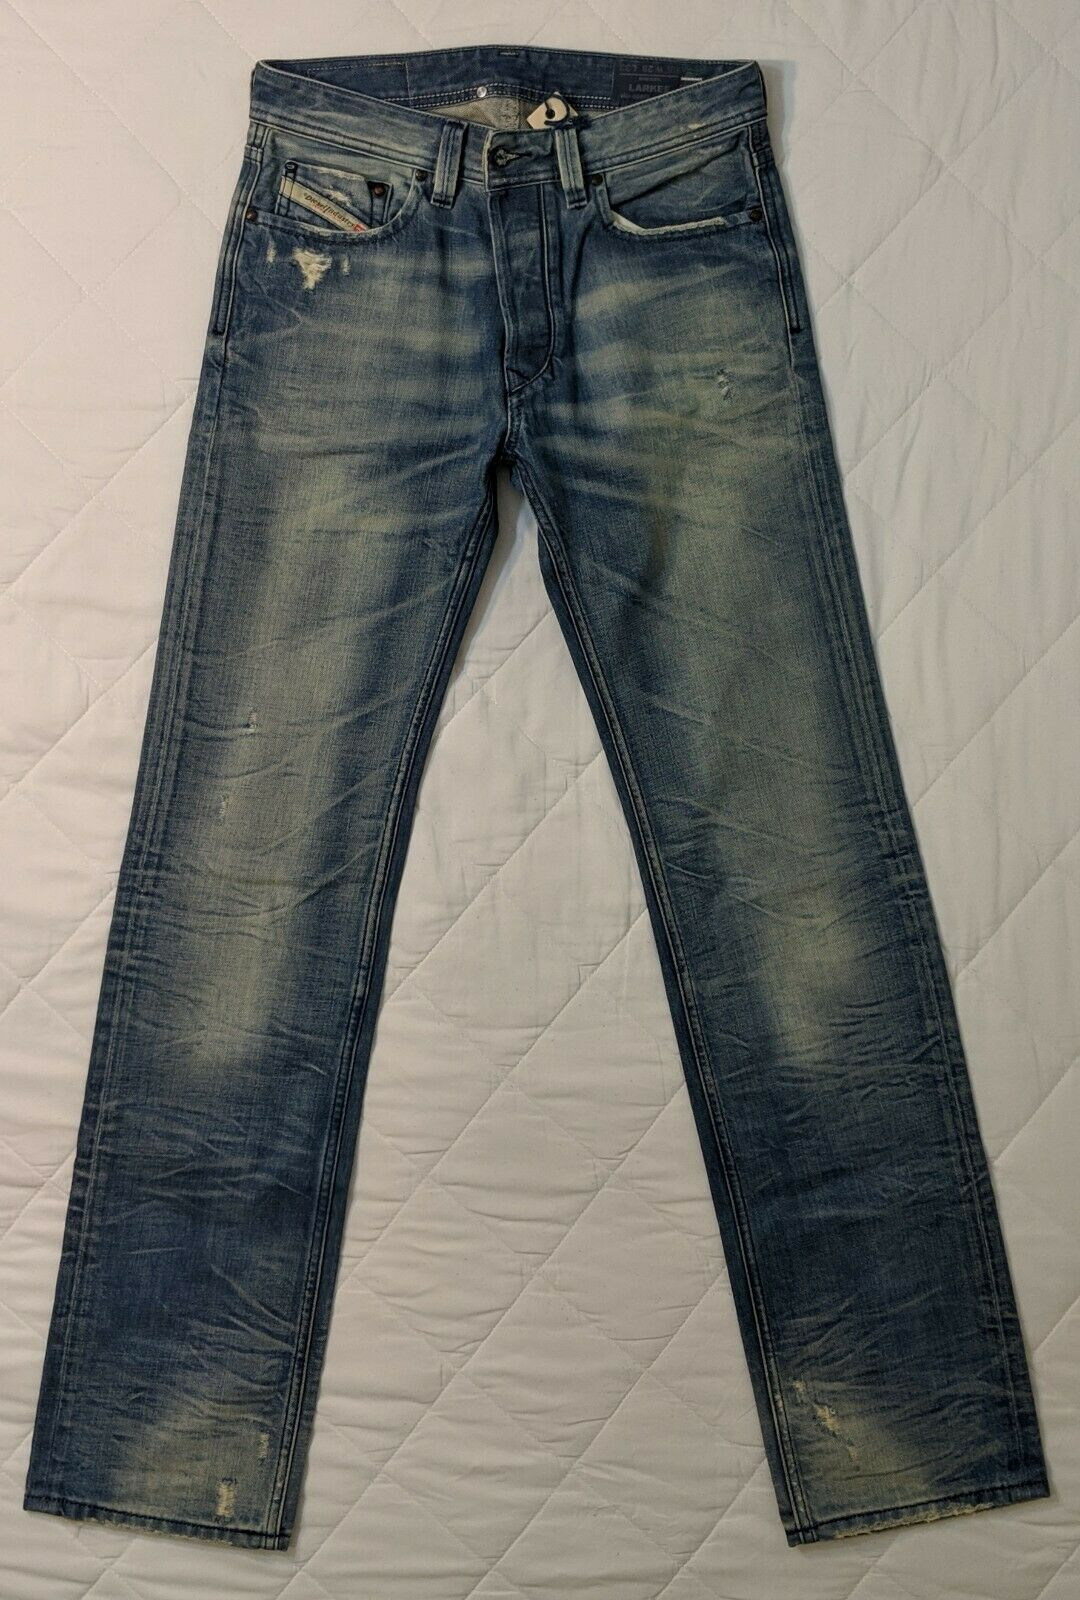 NEW MENS DIESEL LARKEE 008F5 WAIST 28 LENGTH 32 JEANS